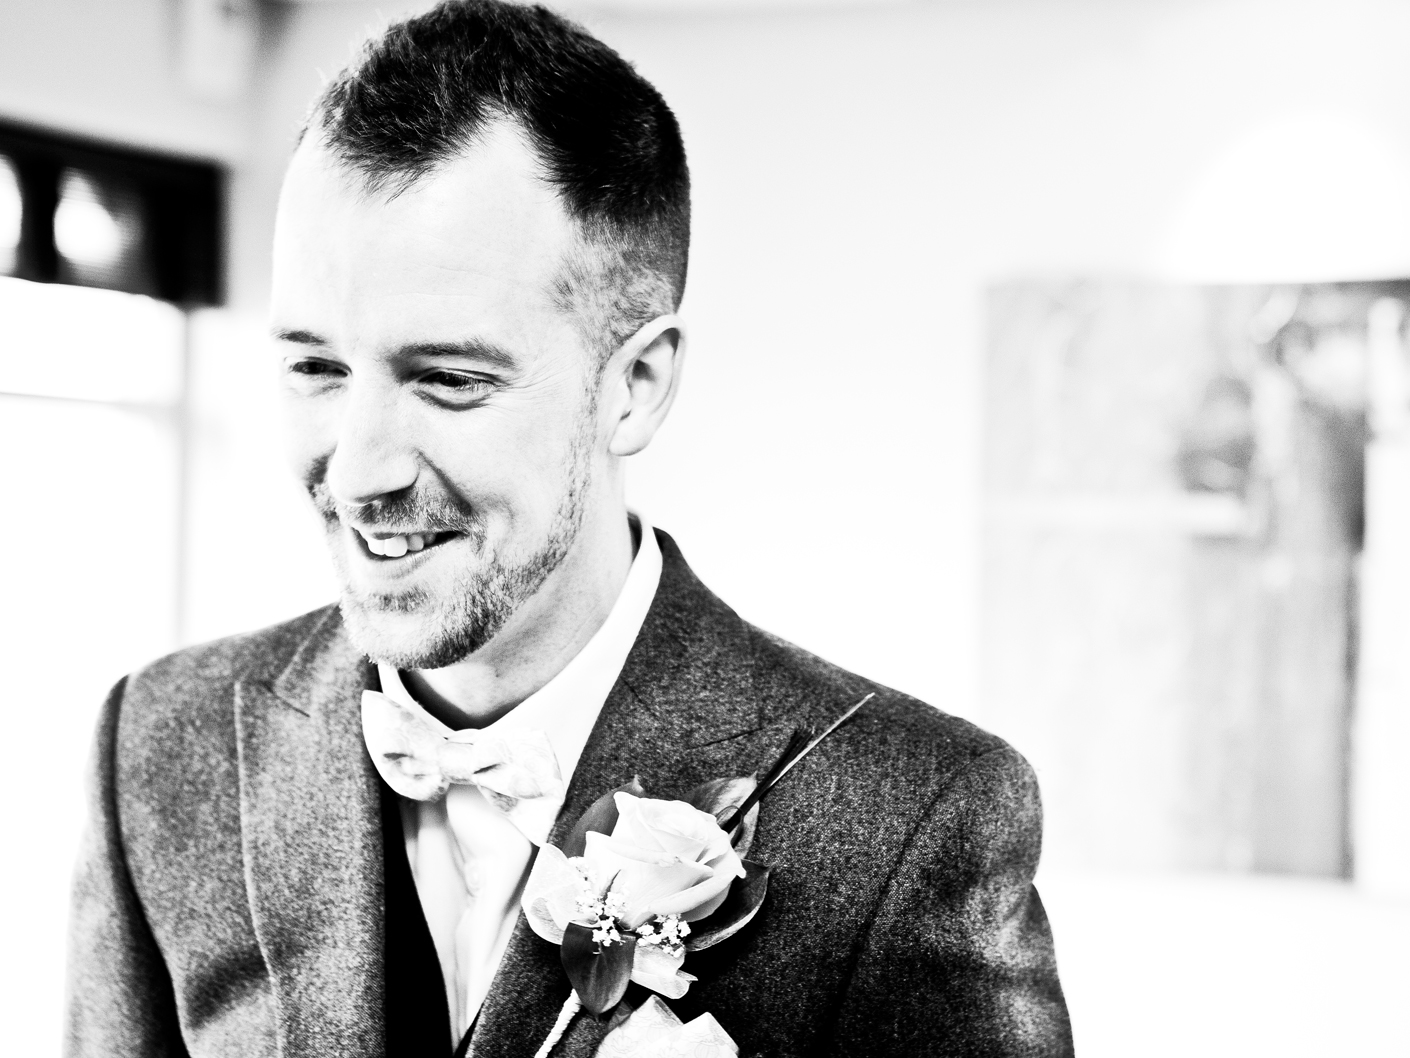 wedding-photography-of-the-groom-at-the-tytherington-club-macclesfield-cheshire